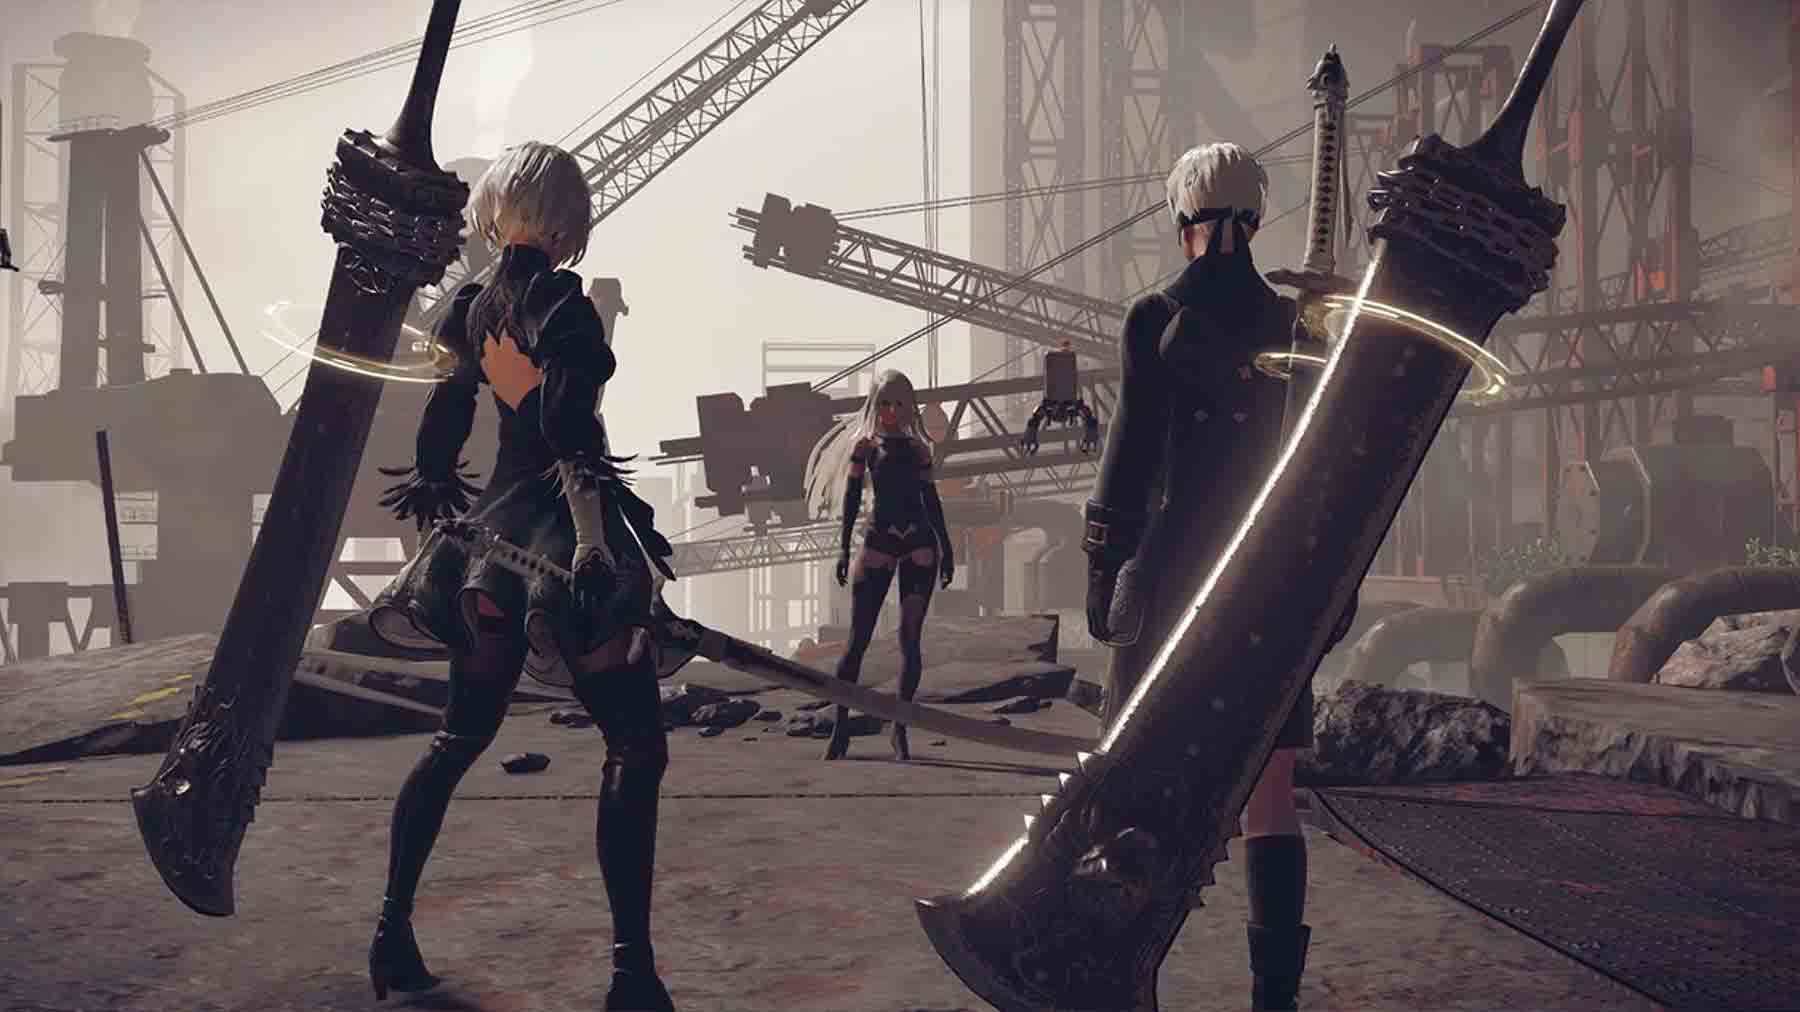 Fix NieR Automata Crash on Startup, Stuttering, Freezing, and White Screen